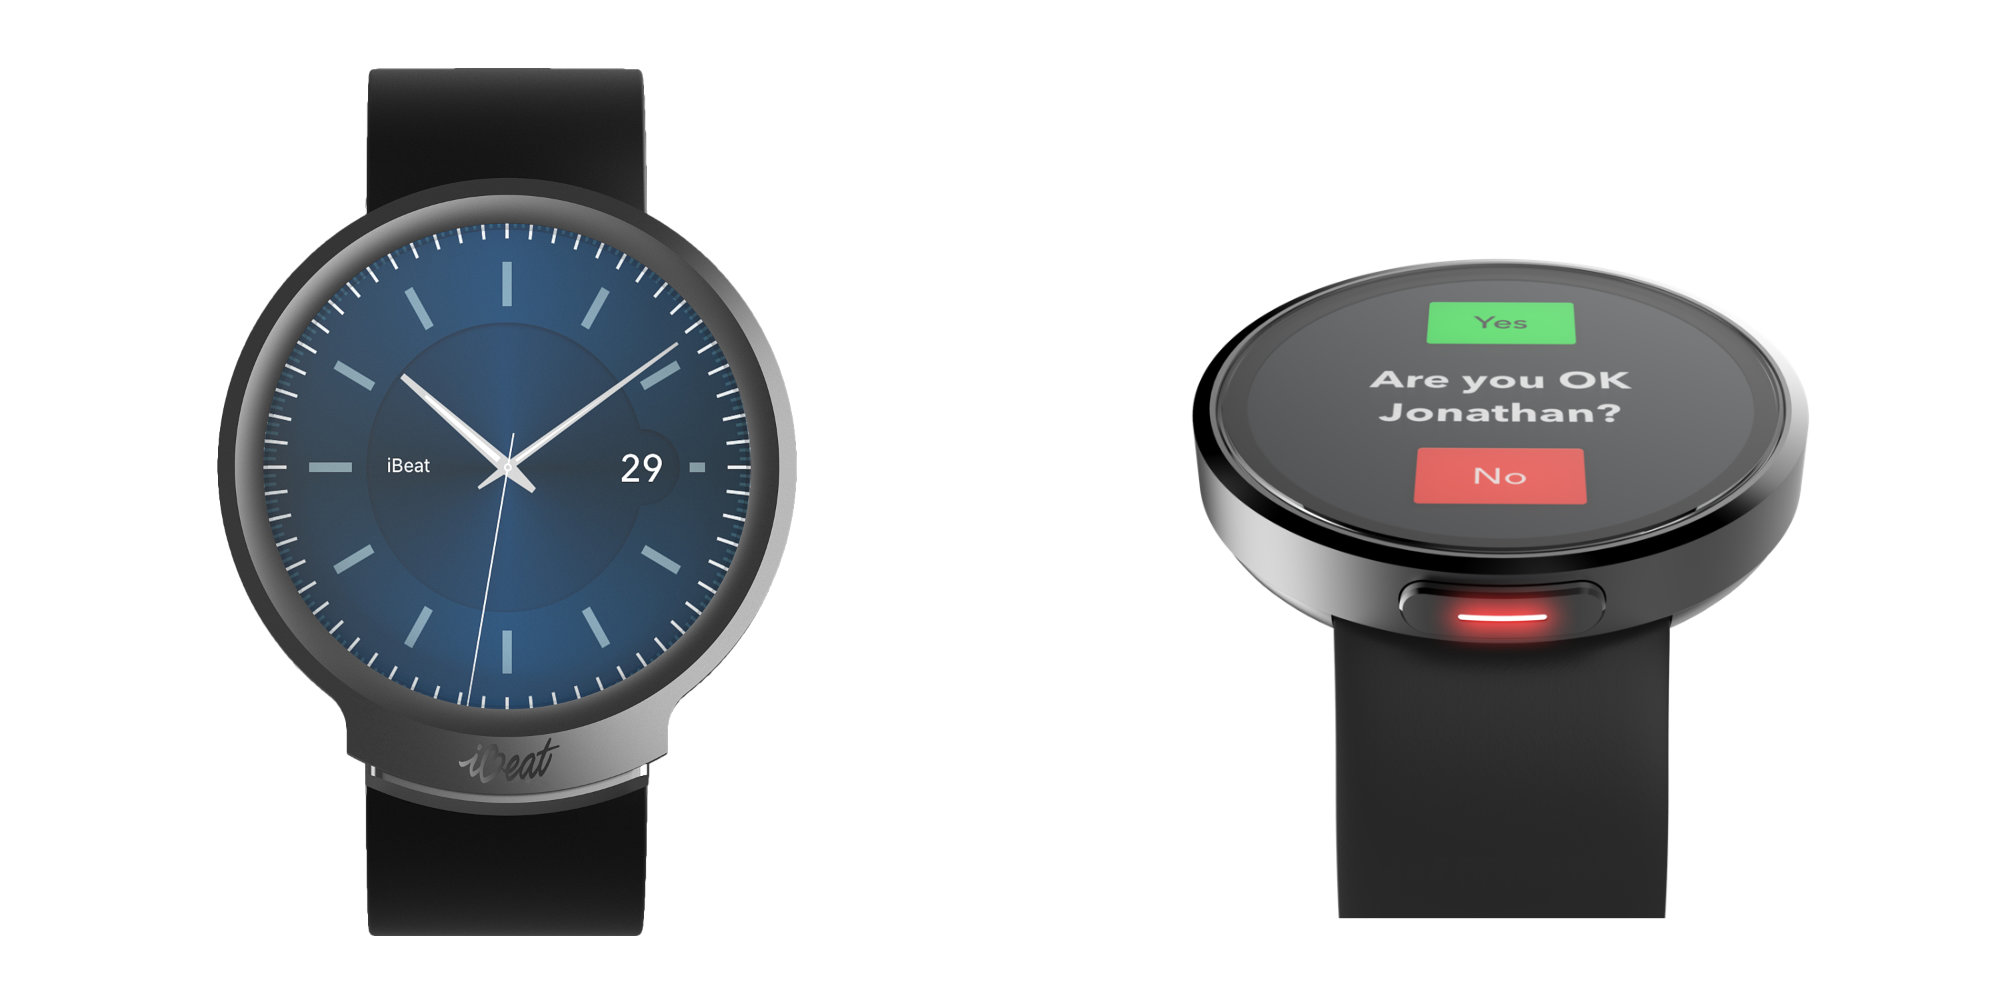 iBeat's new Heart Watch offers continual health monitoring with one-touch emergency button